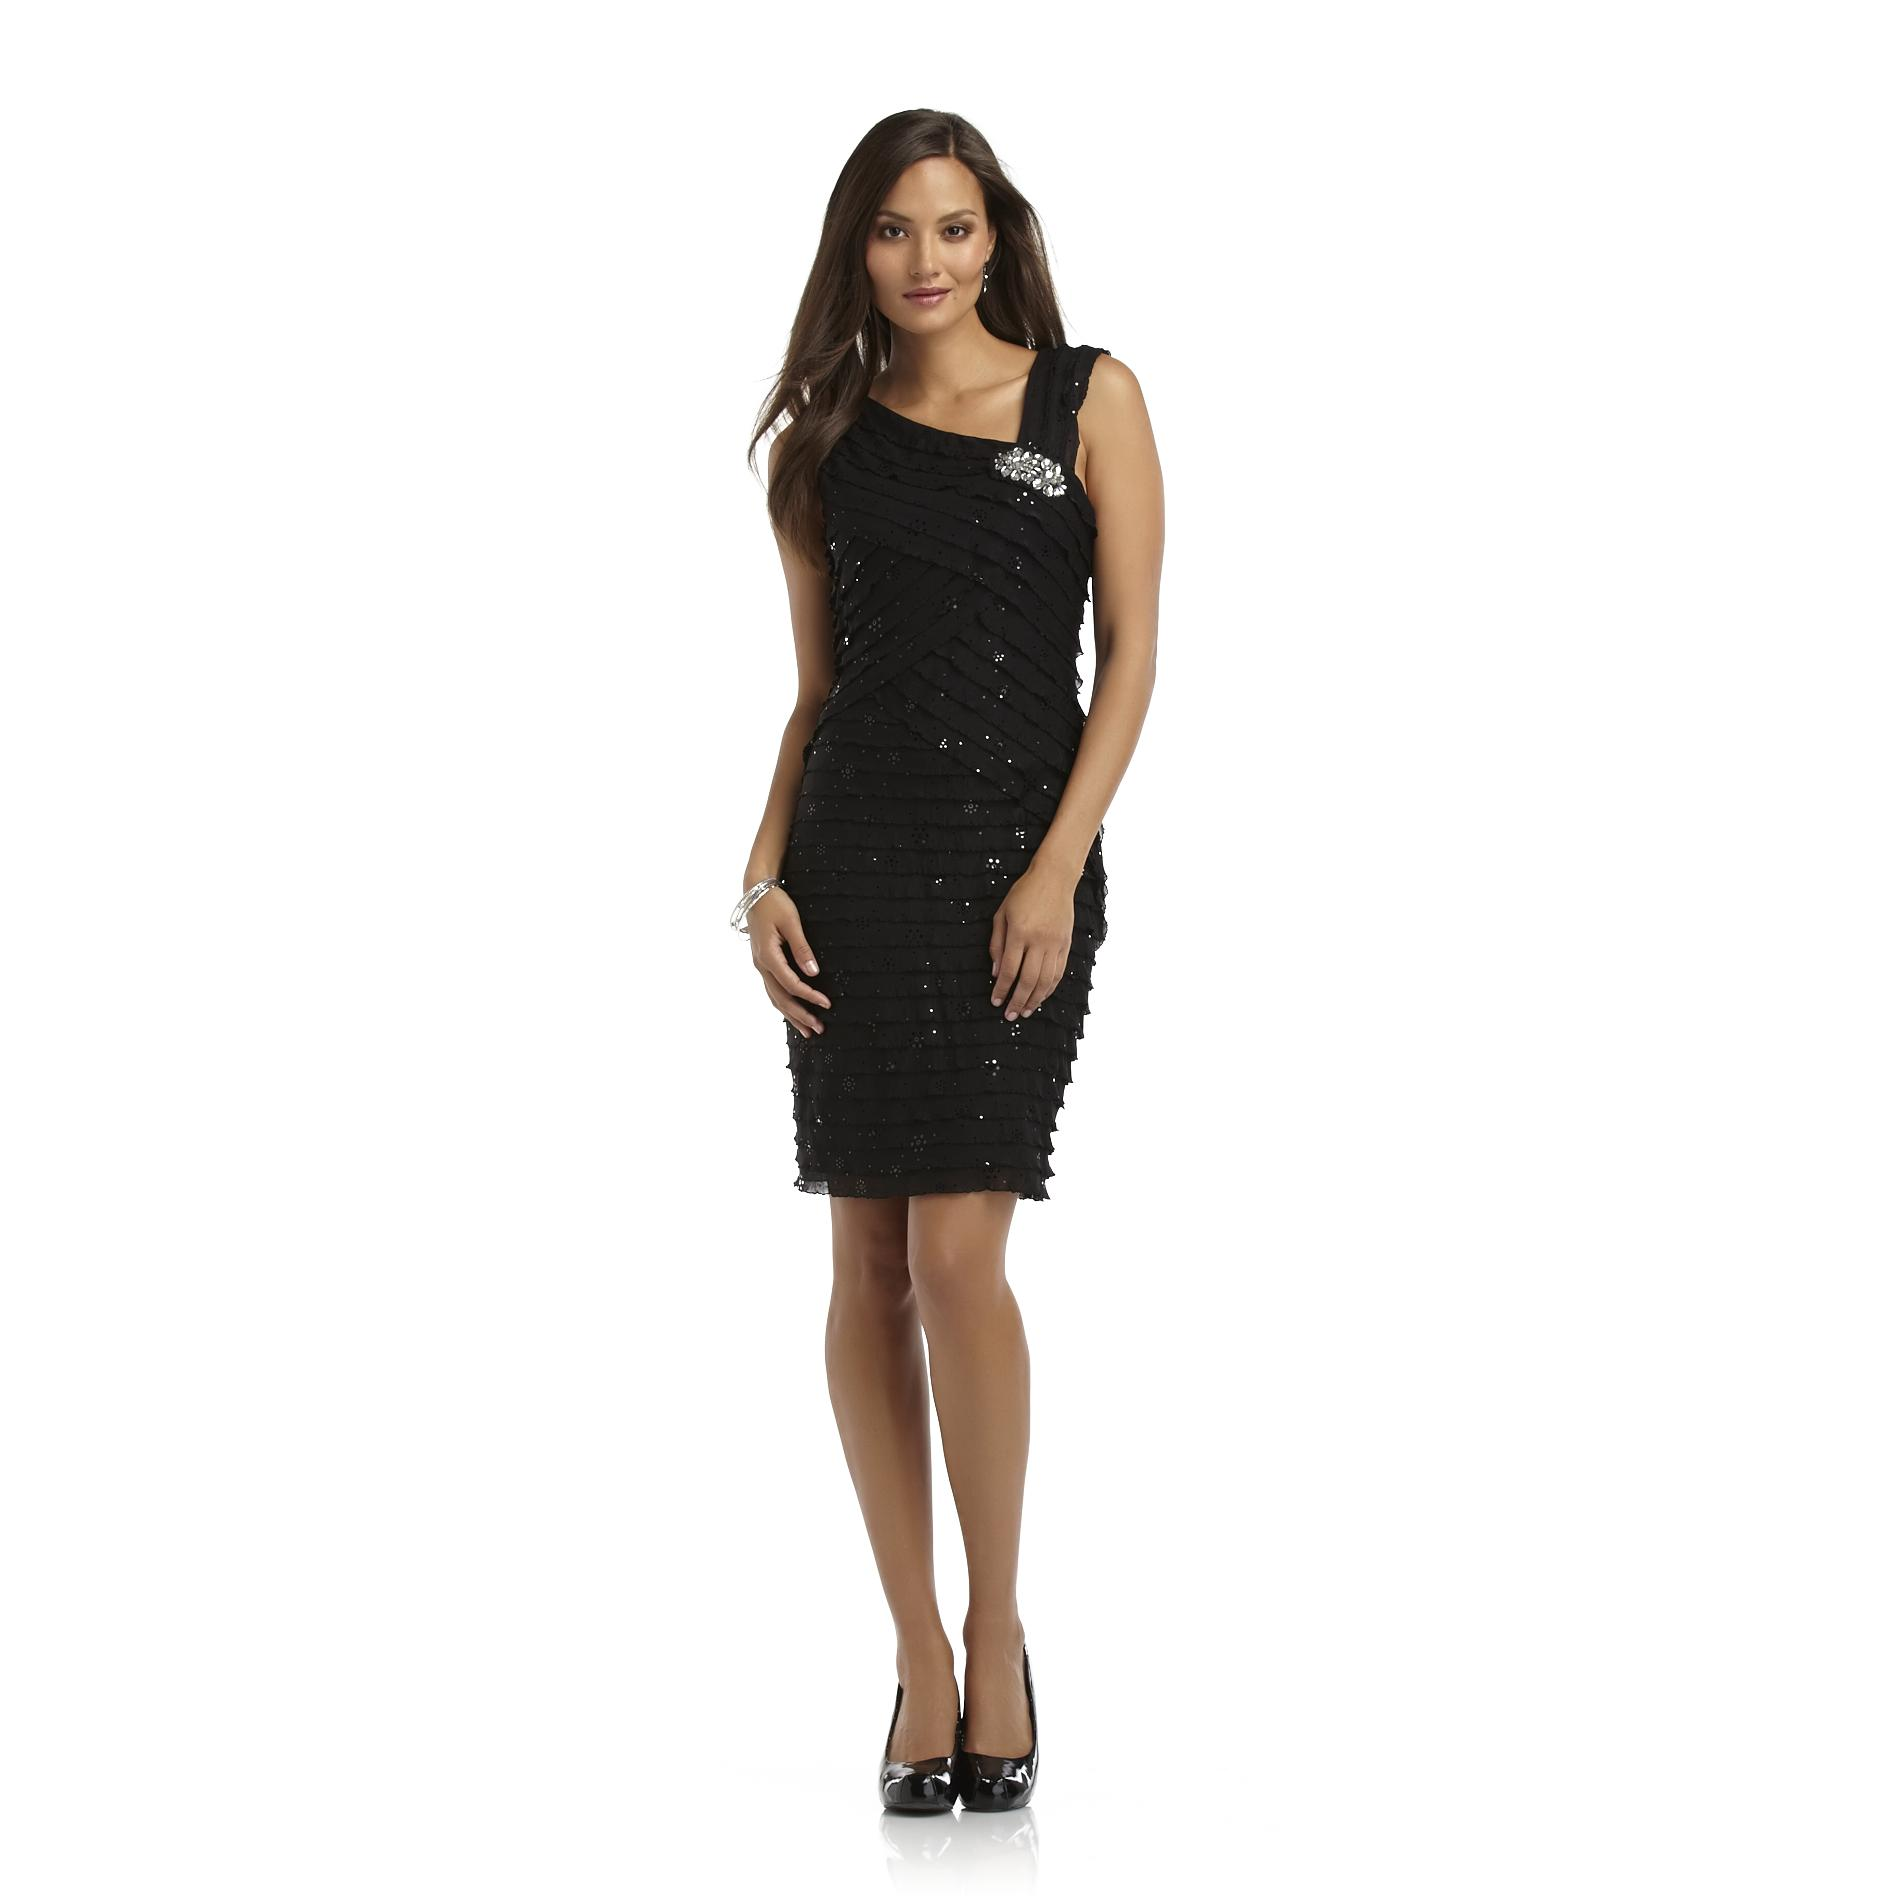 Amanda Lane Women's Sleeveless Sheath Dress at Sears.com